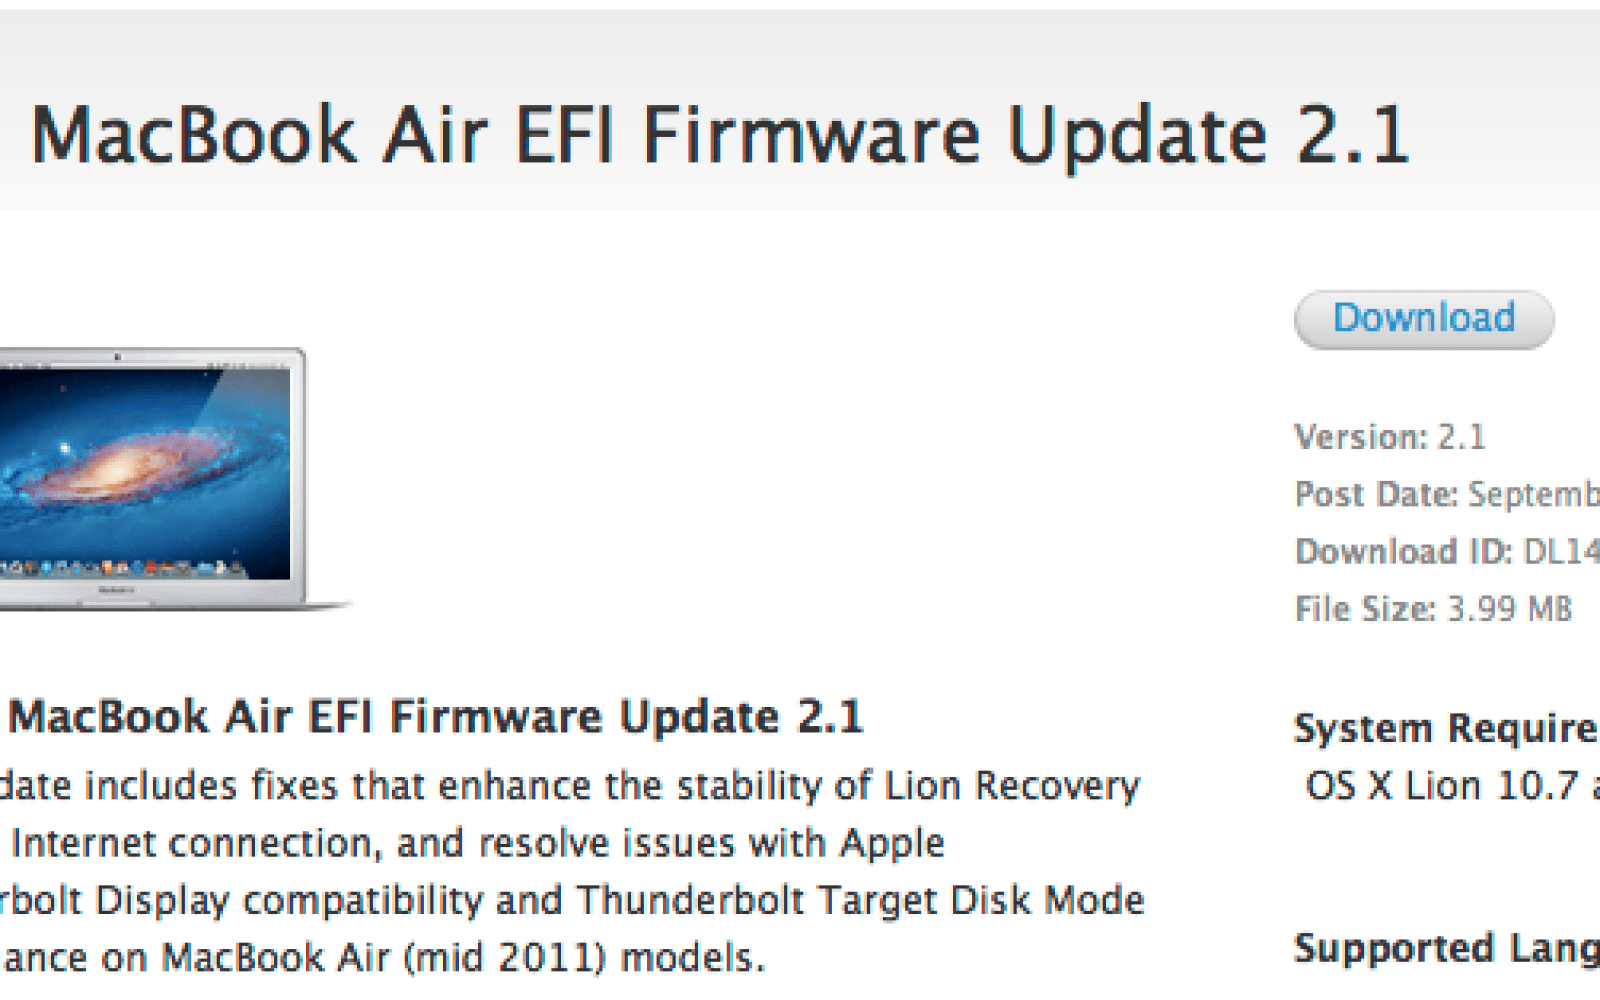 Get your MacBook Air ready for Thunderbolt with EFI firmware